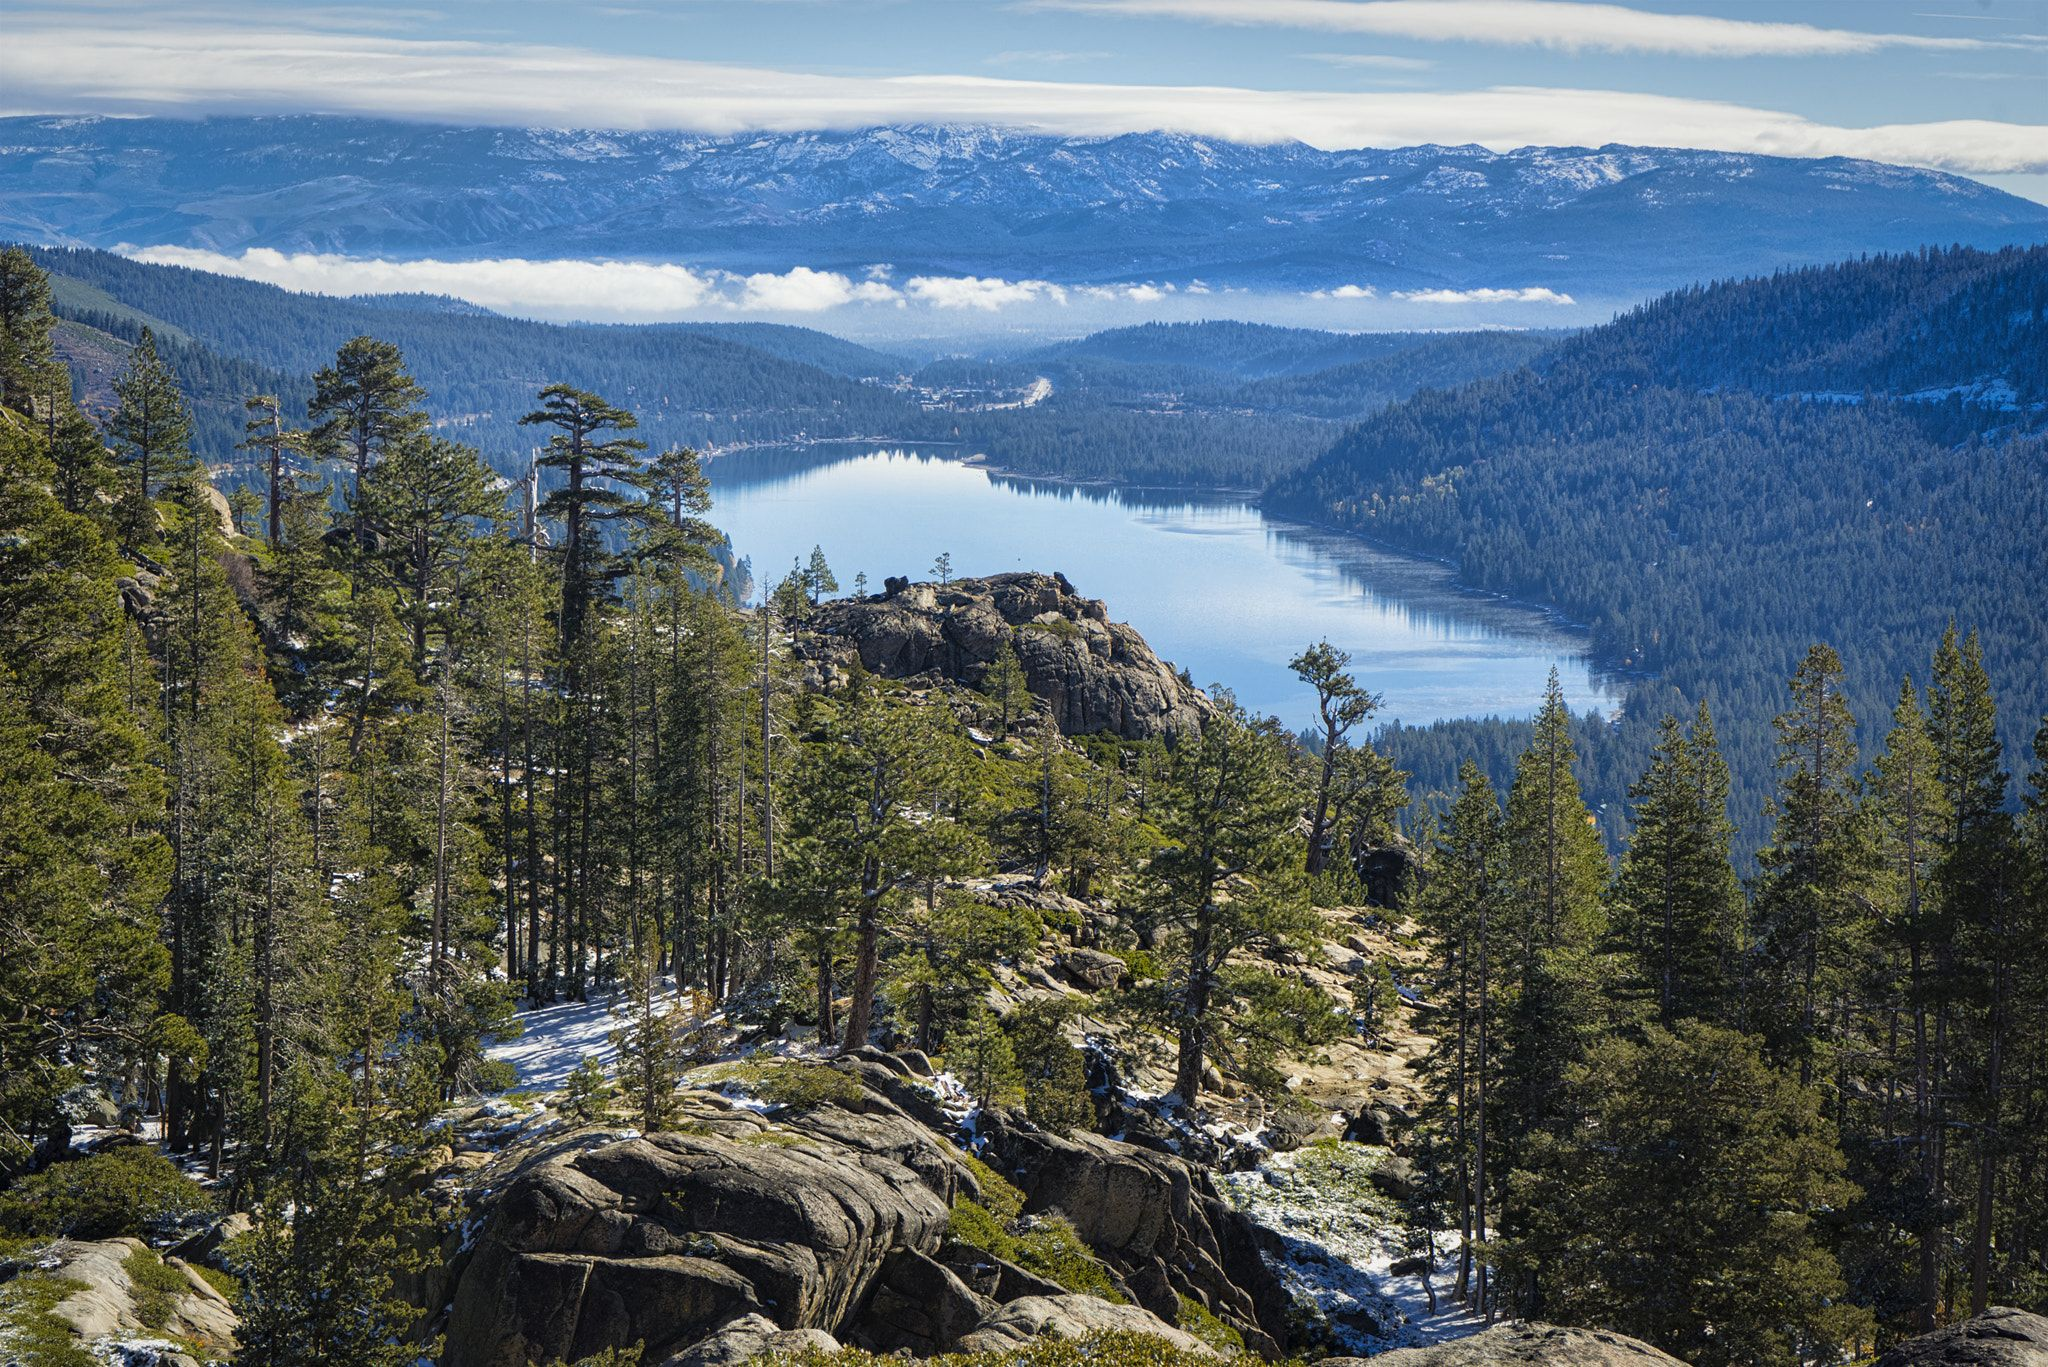 Donner Lake In Spring Donner Lake Over View From Top Of Donner Summit In Spring Donner Lake Nature Inspiration Lake